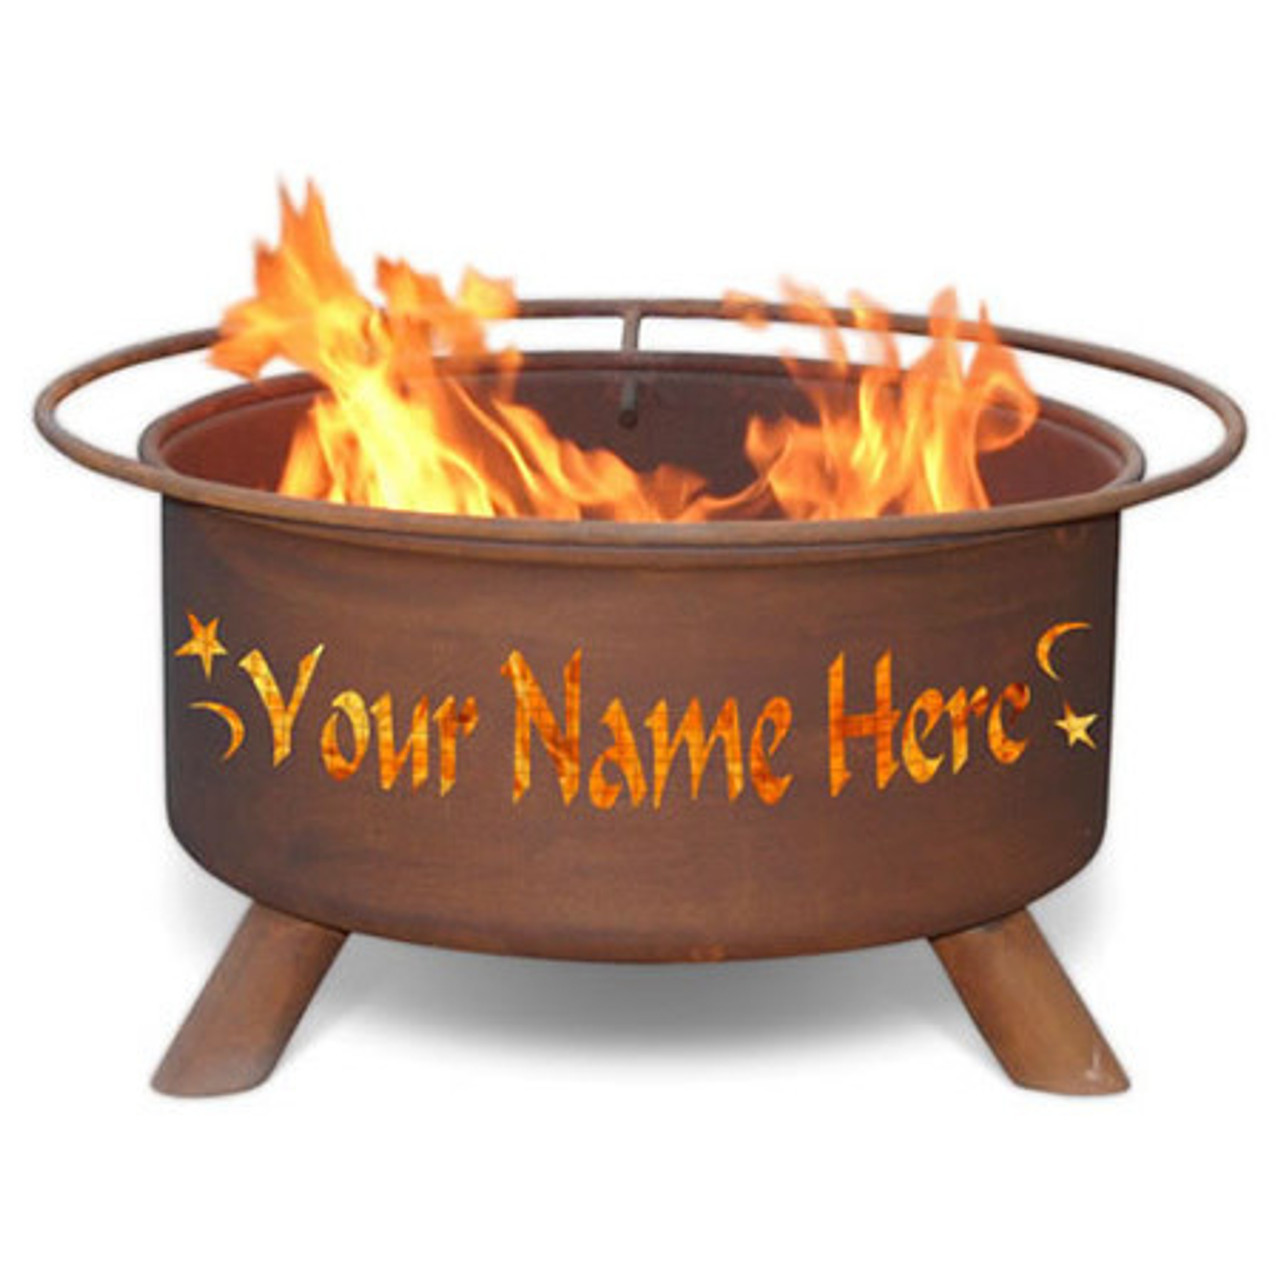 Personalized Custom Fire Pit -F199 - Personalized Custom Fire Pit -F199 - The Fire Pit Store